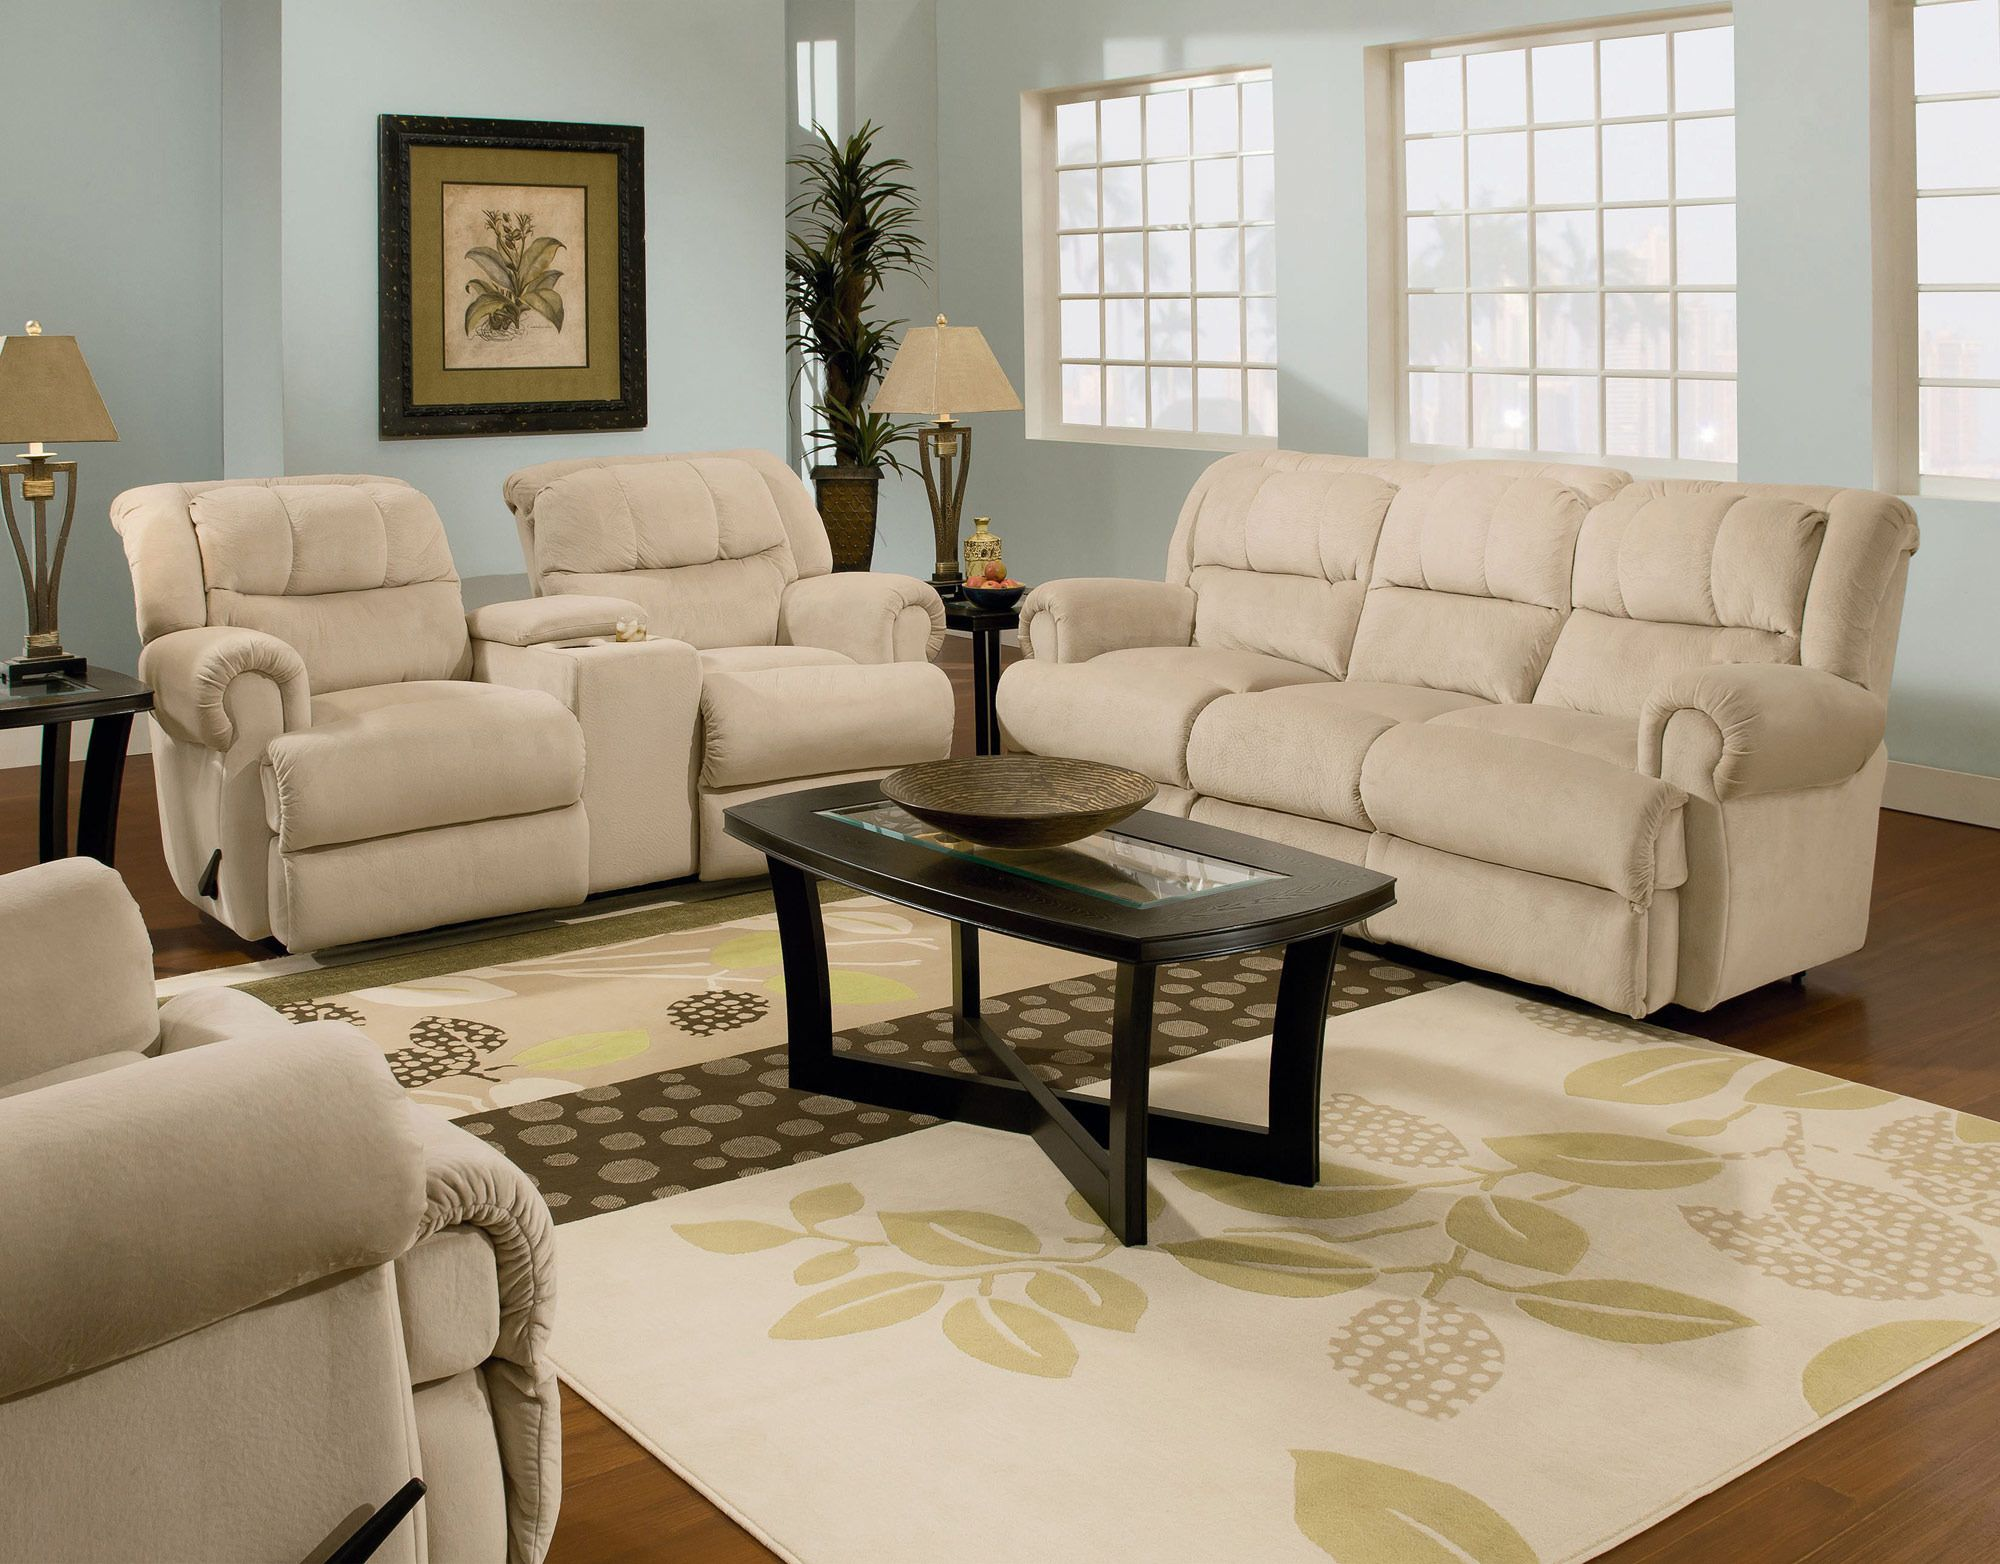 Double Reclining Sofa With Fold Down Table Cloth Tray Recliner Sofas For